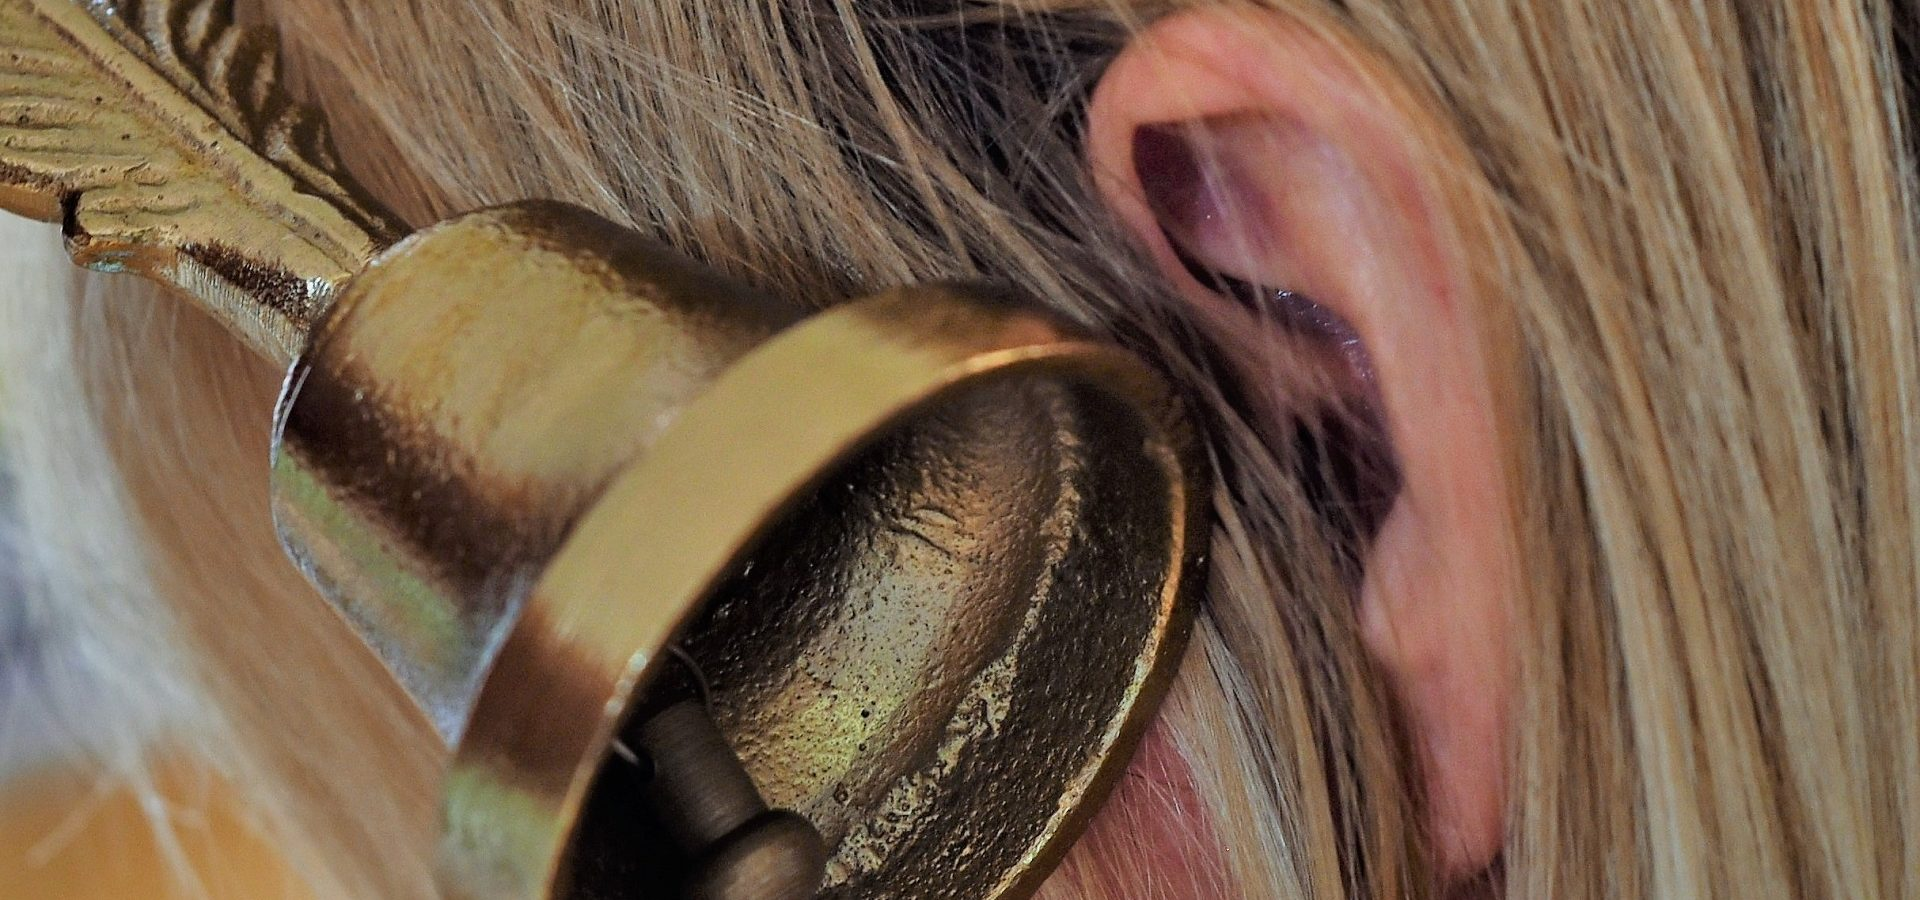 A bell placed next to a womans ear, representing the ringing sound associated with tinnitus